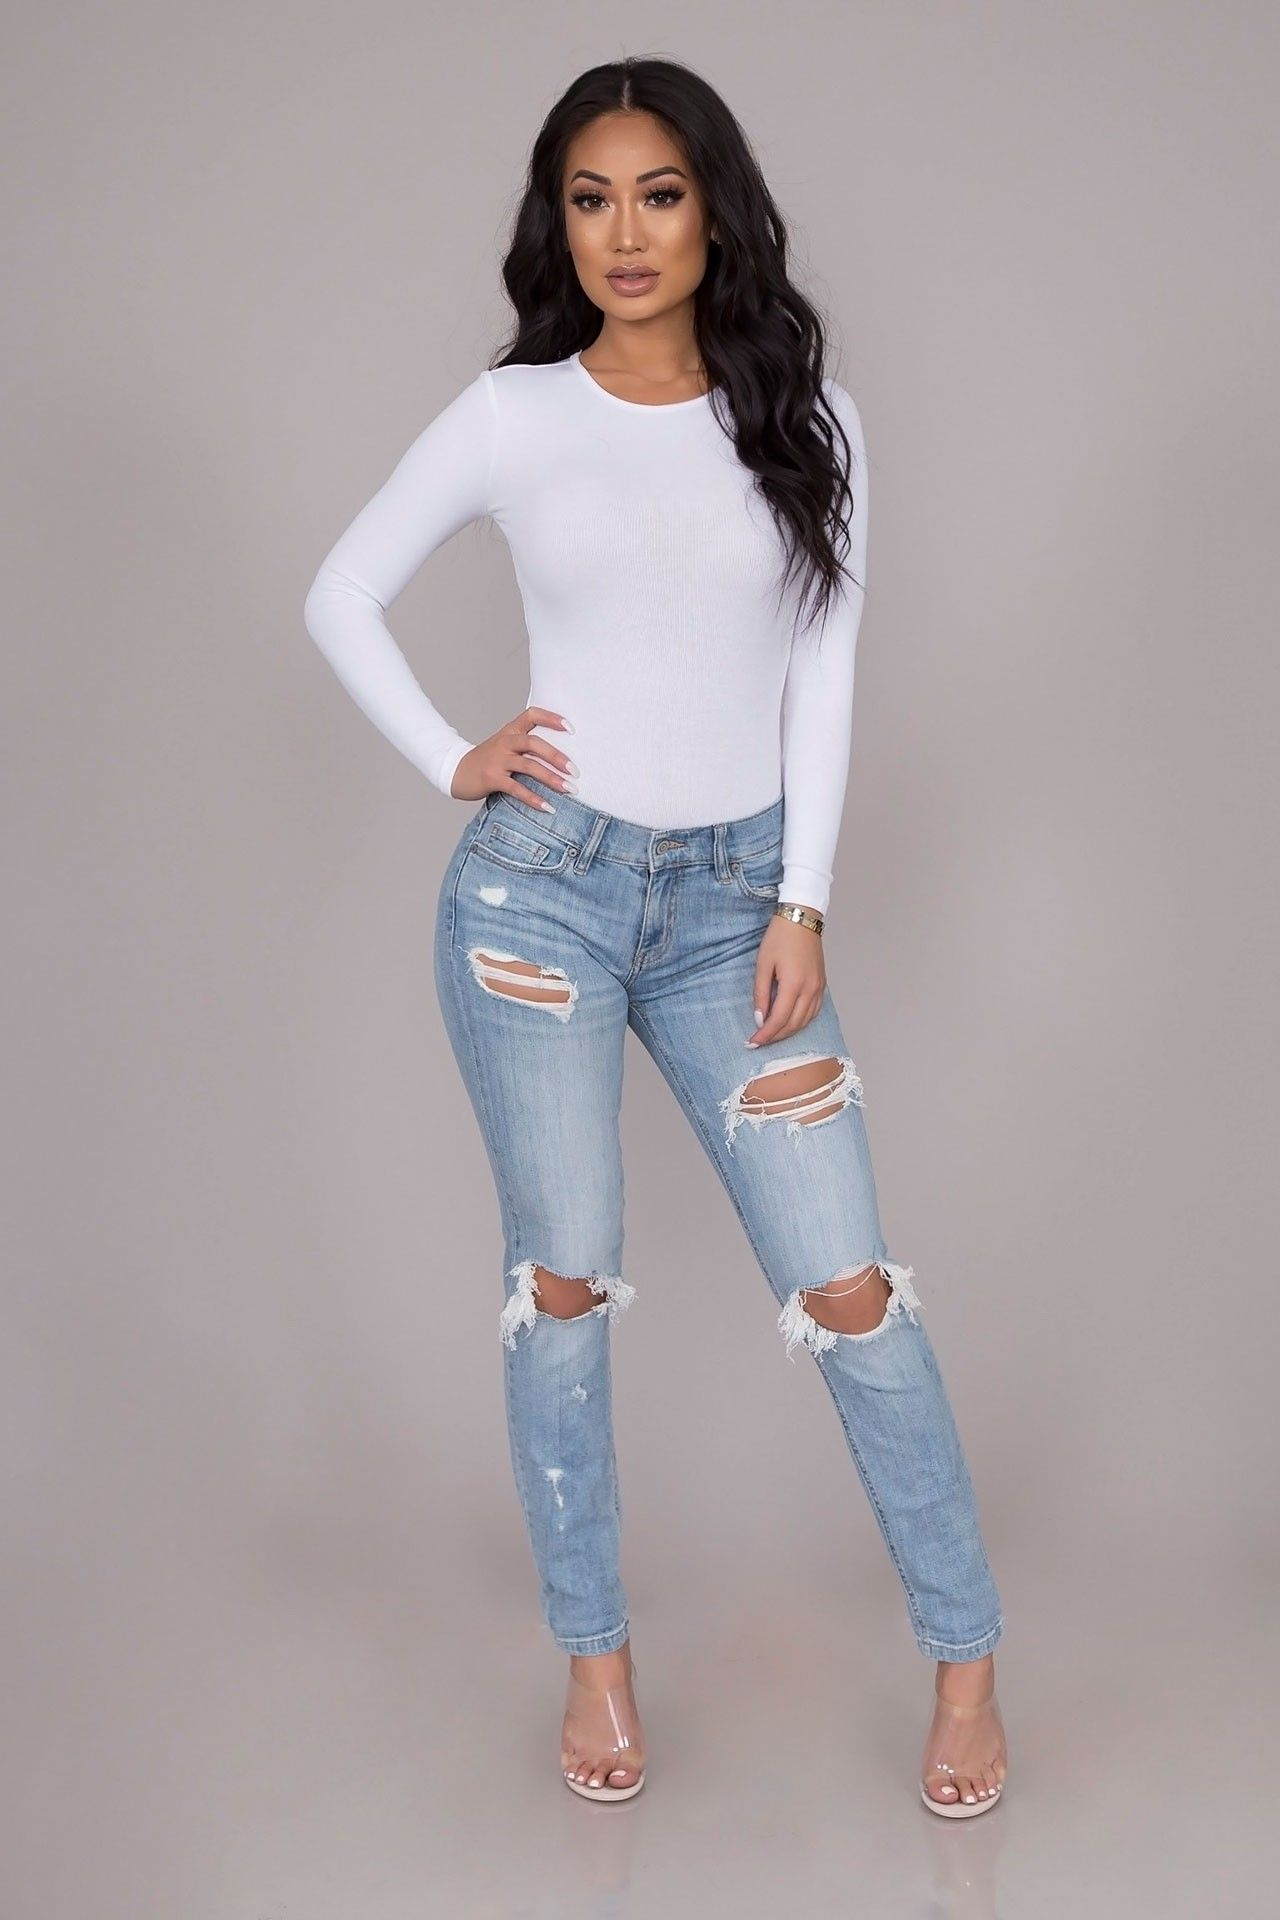 f666f5c462 A pair of easygoing skinny jeans jeans fashioned from a light-wash denim  woven with a comfortable stretch. It features a low-rise, distressed  accents, ...